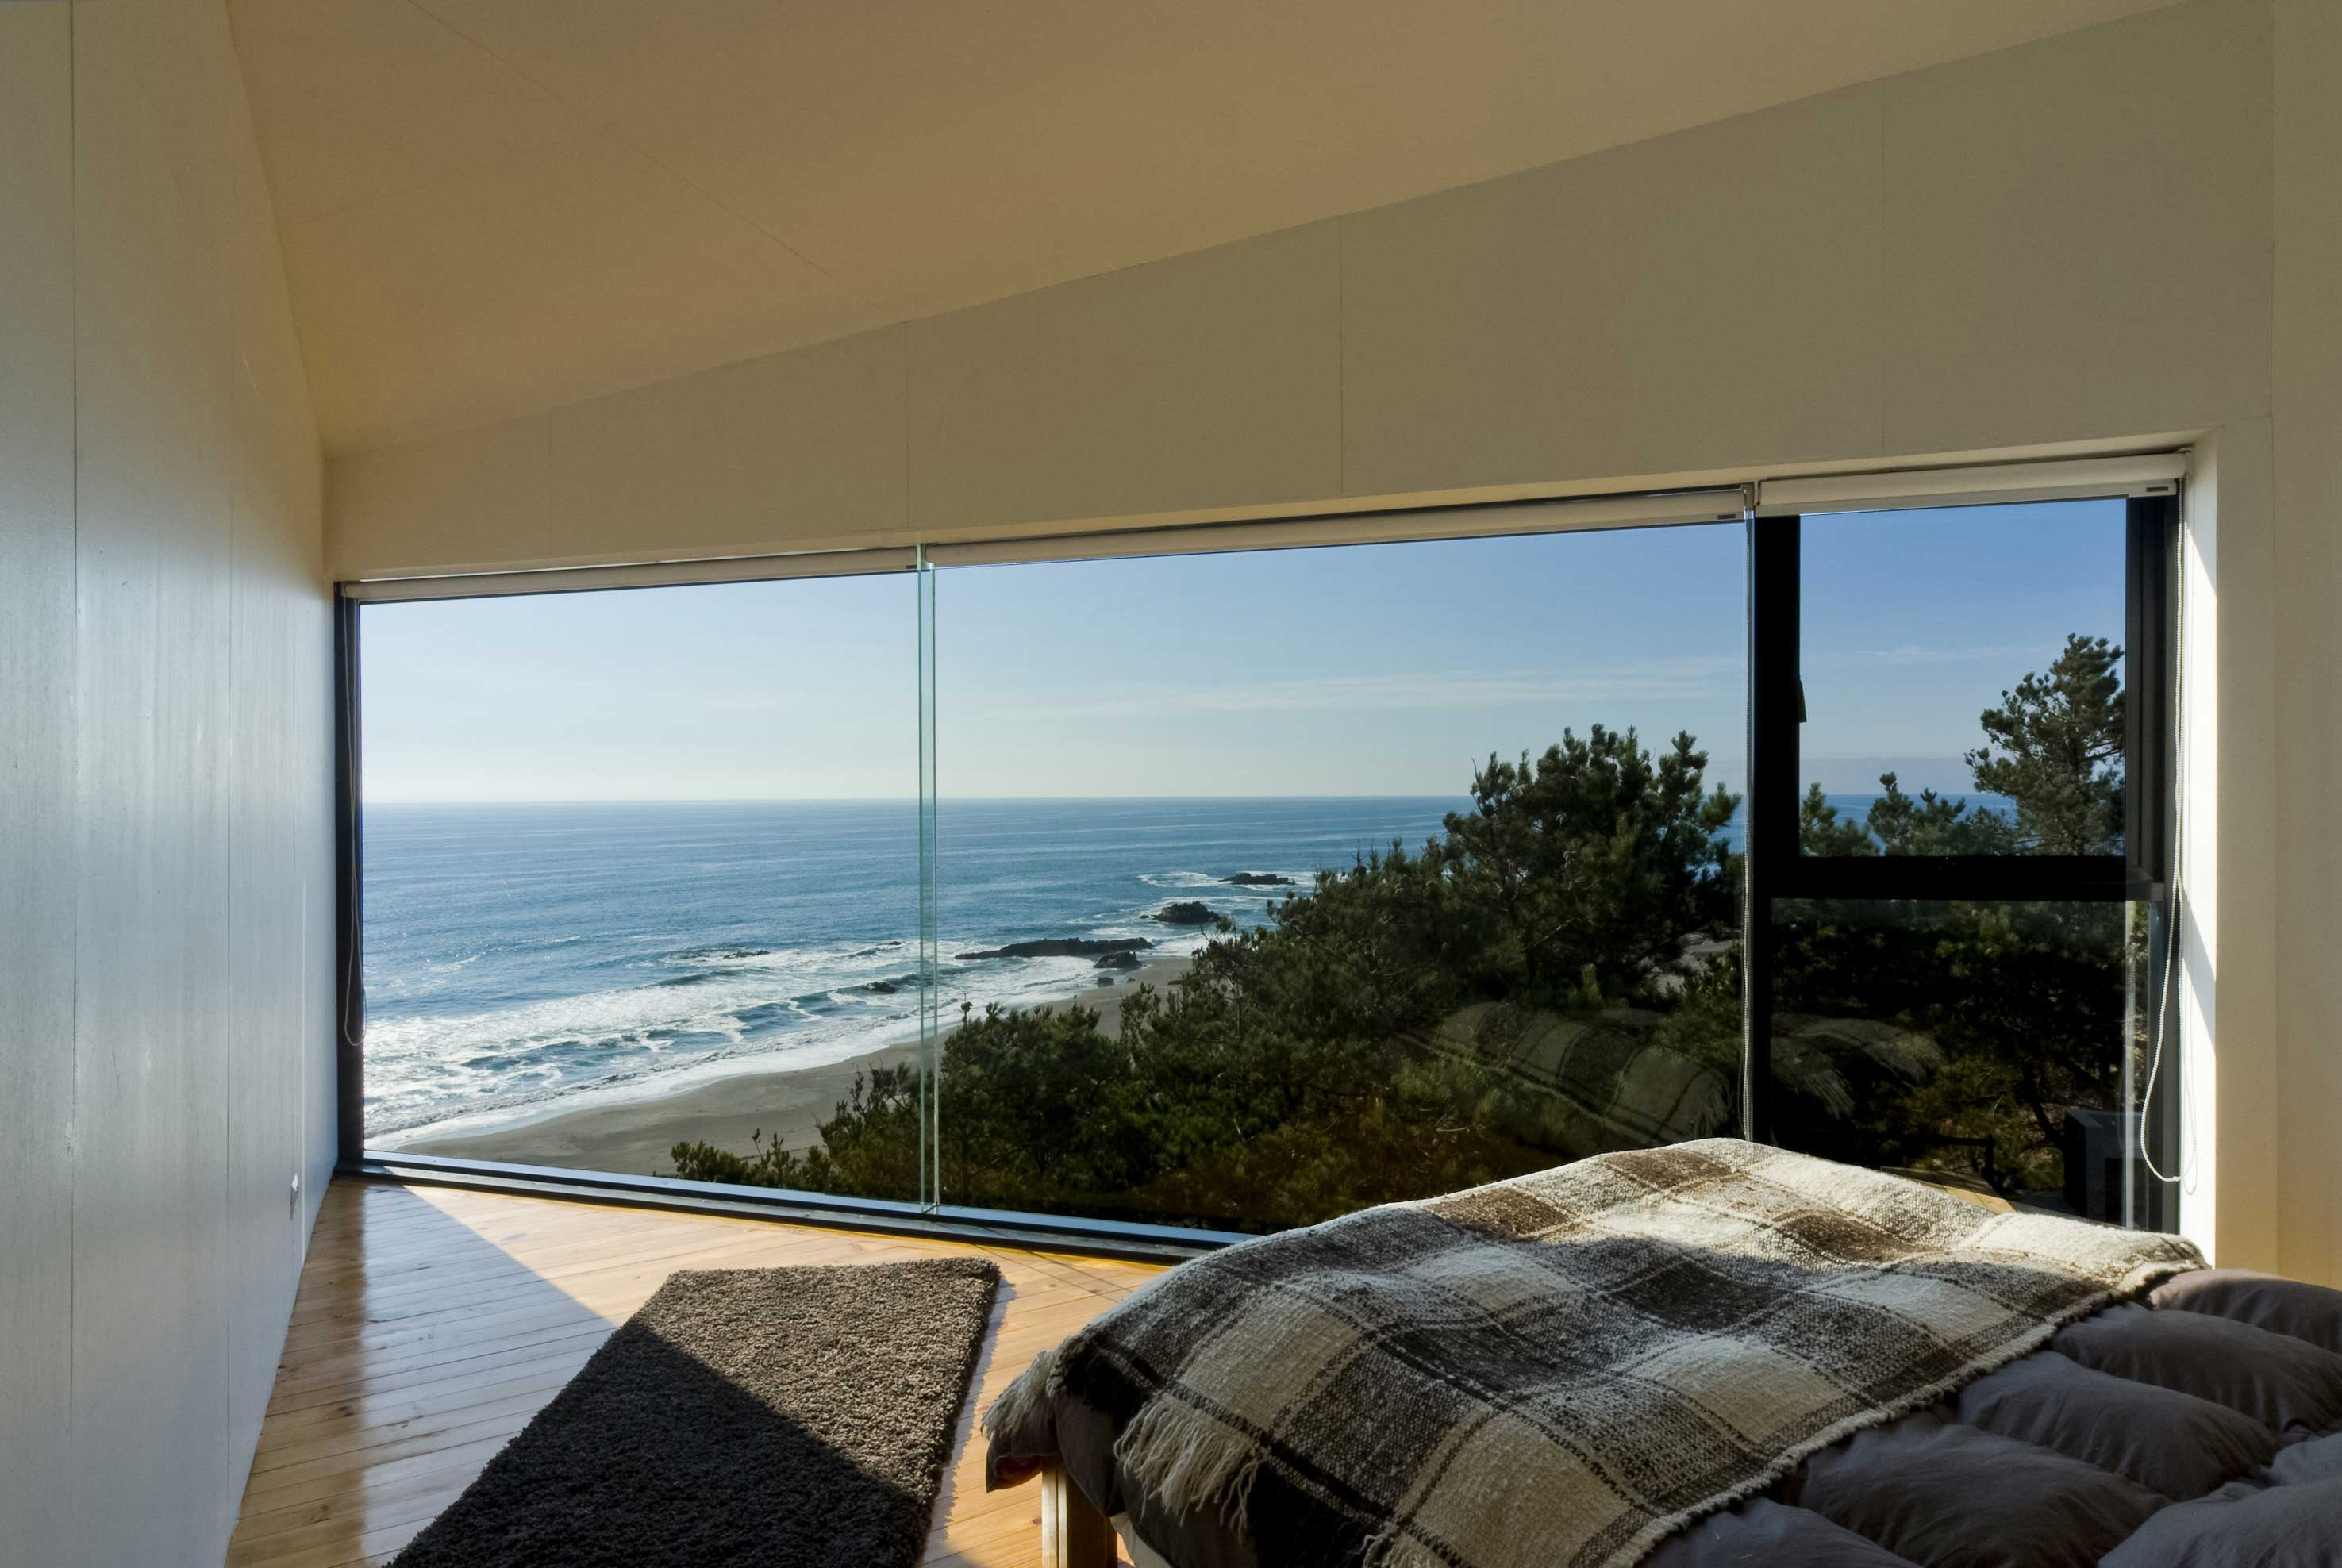 20 Bedroom Panoramic Glass Wall Ideas Adorable Home